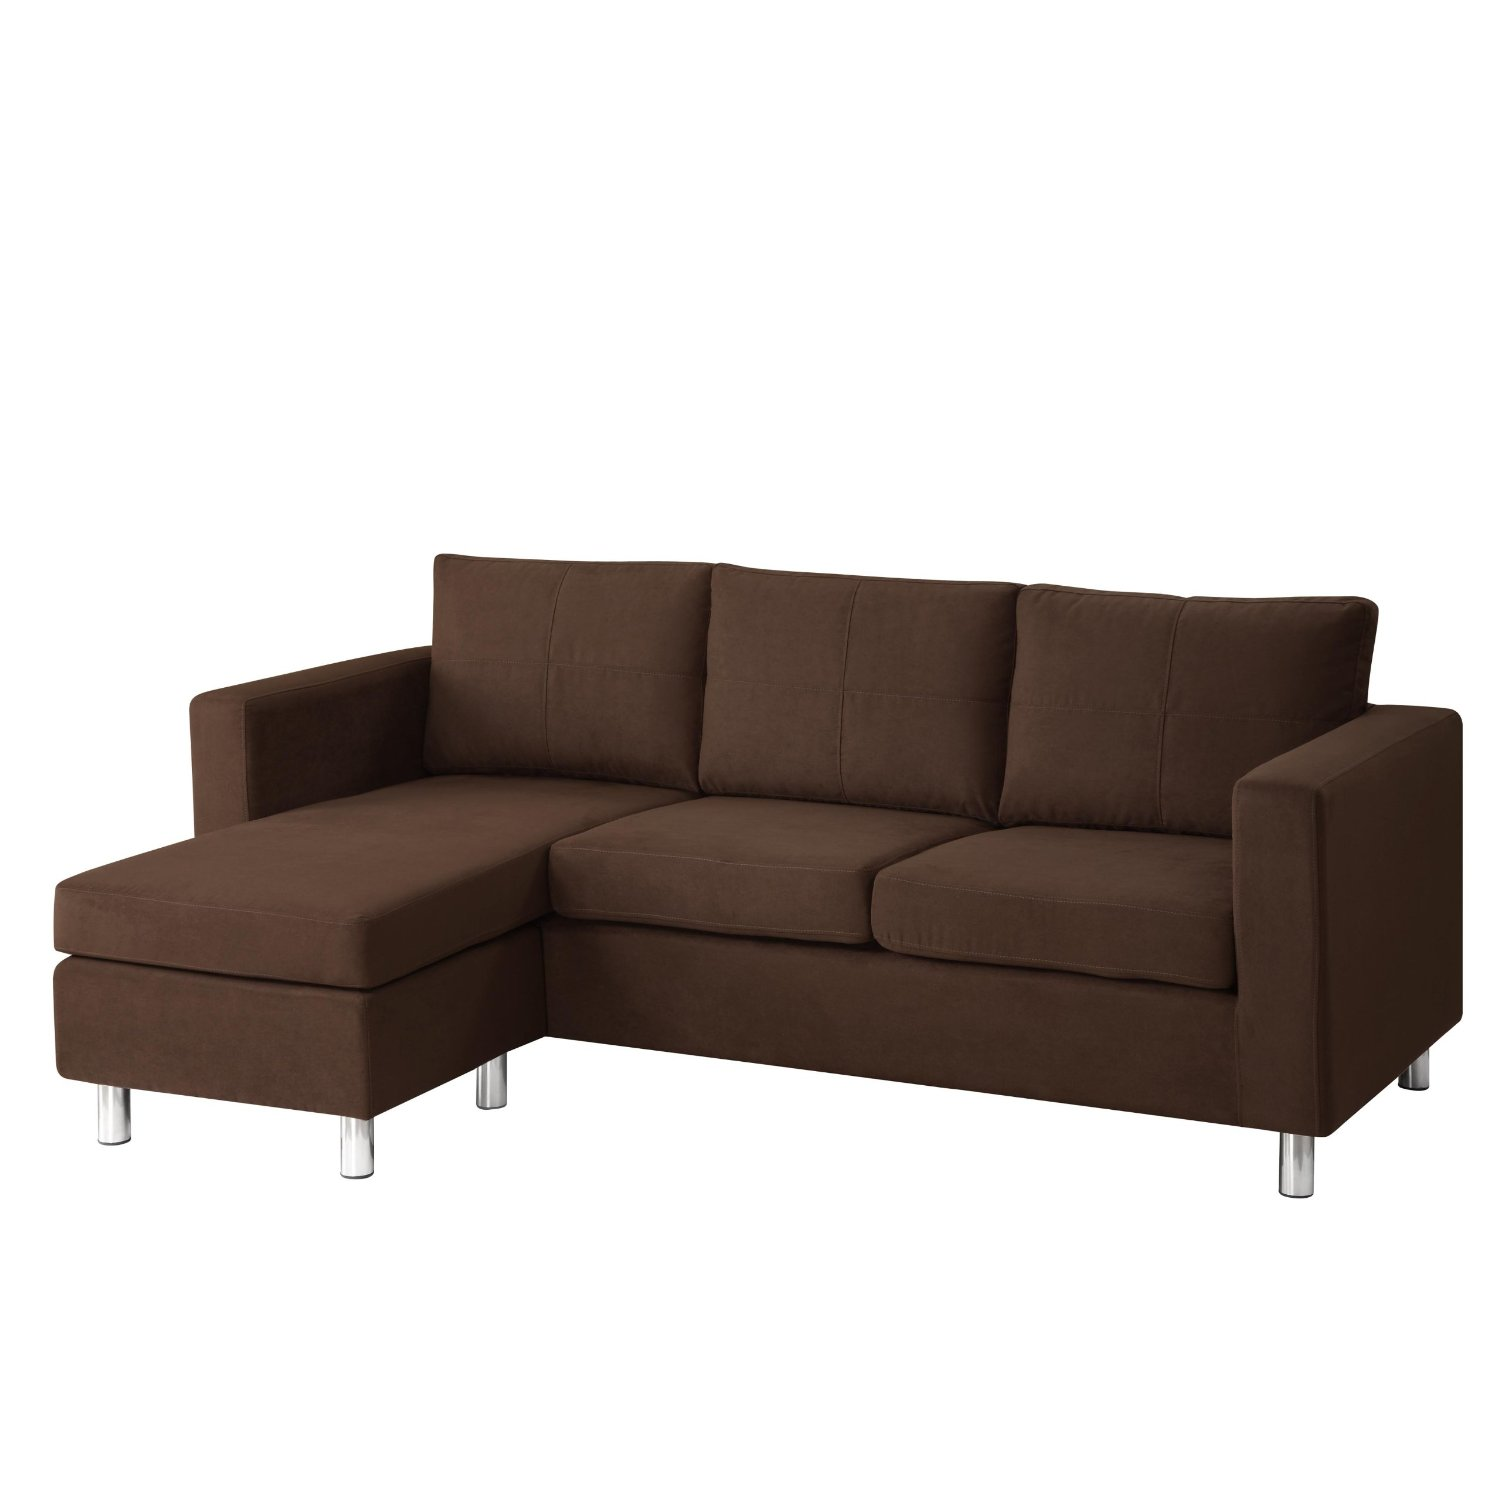 Sleeper Sectional Canada Sleeper Sofa Sectional Canada Review Home Co